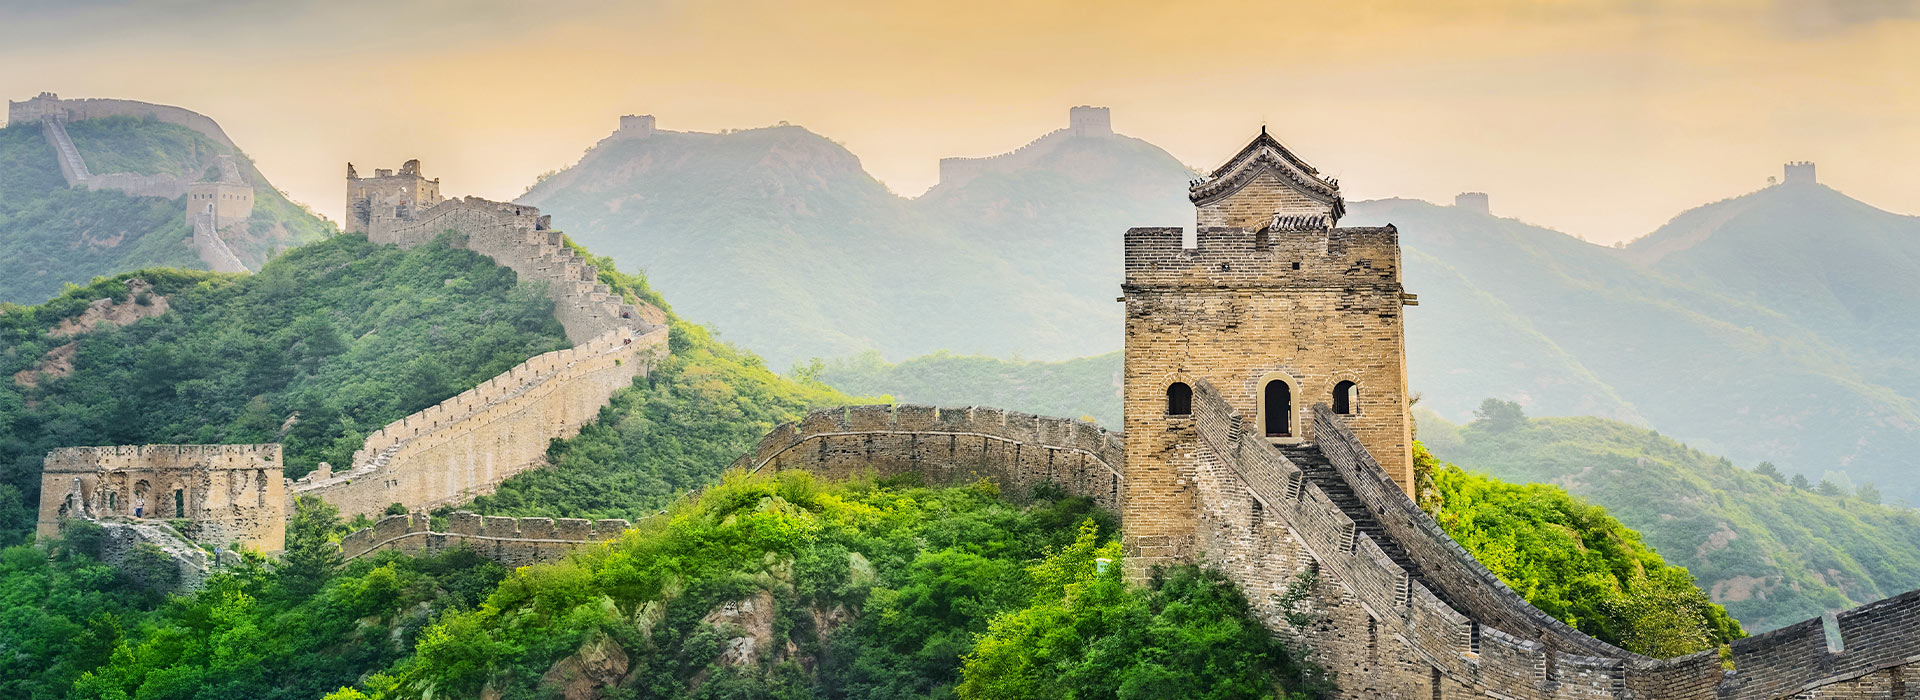 Reisen nach China - Individuelle Reisen nach China - Harry Kolb AG - Tourismus